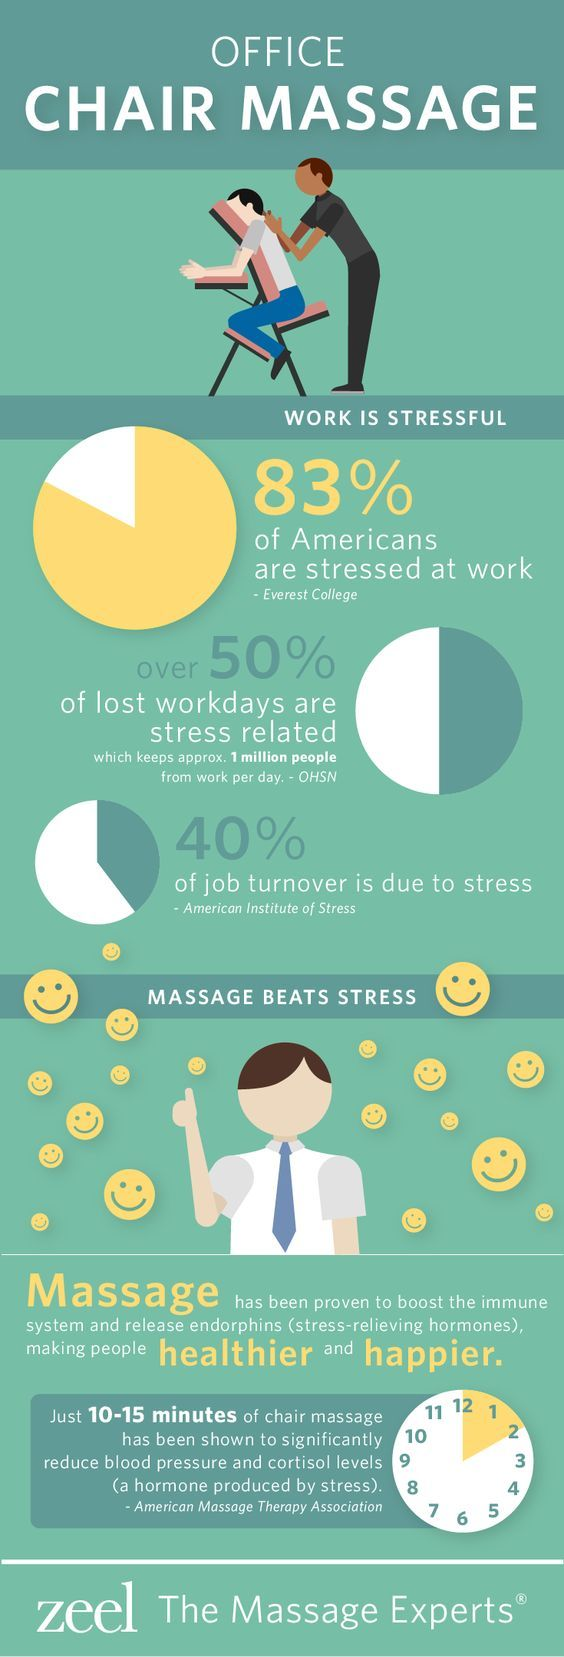 Tips for Selecting the Right Massage Therapist for You